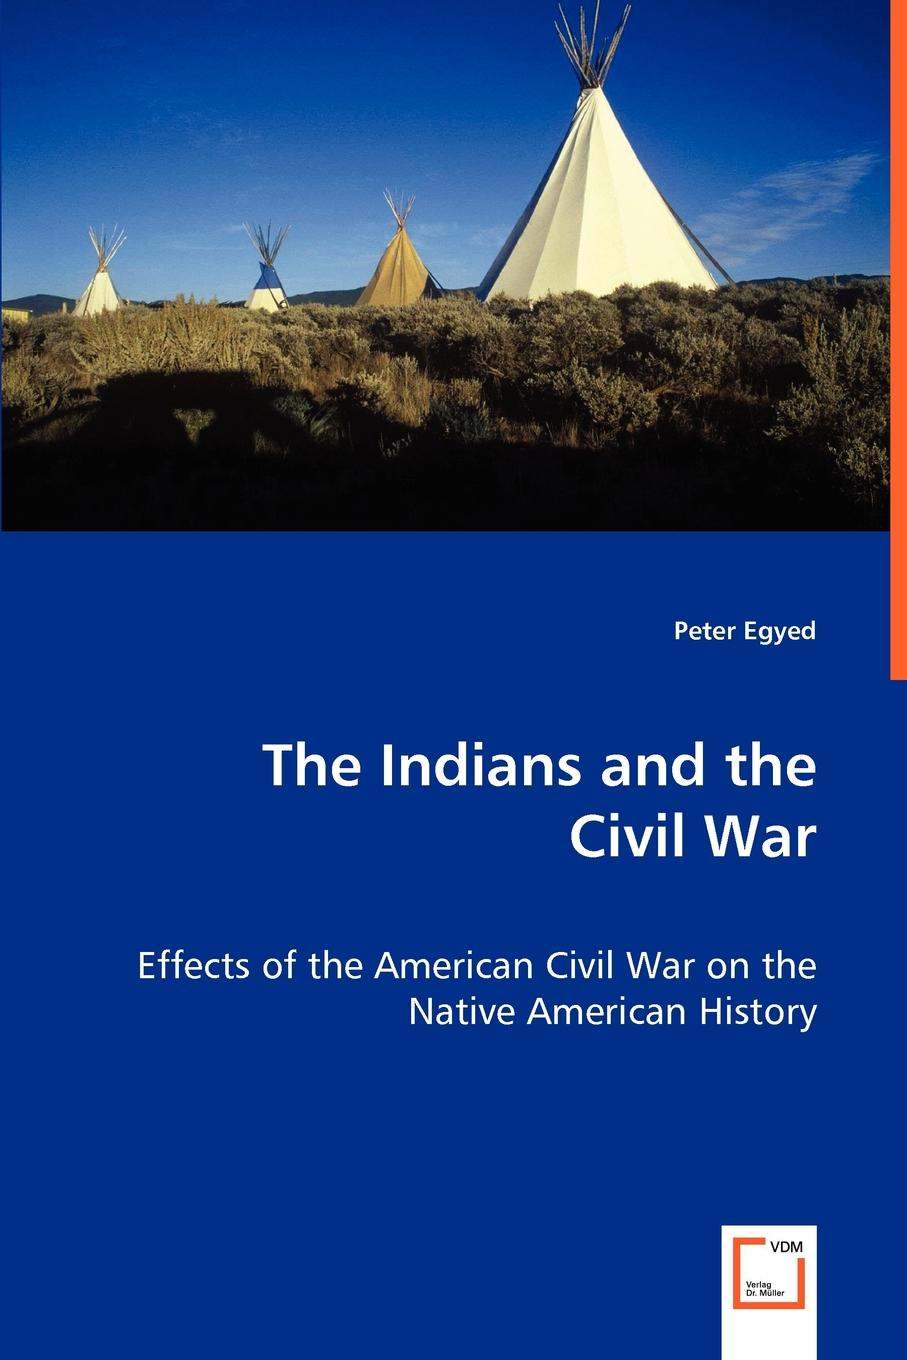 Peter Egyed The Indians and the Civil War - Effects of the American Civil War on the Native American History